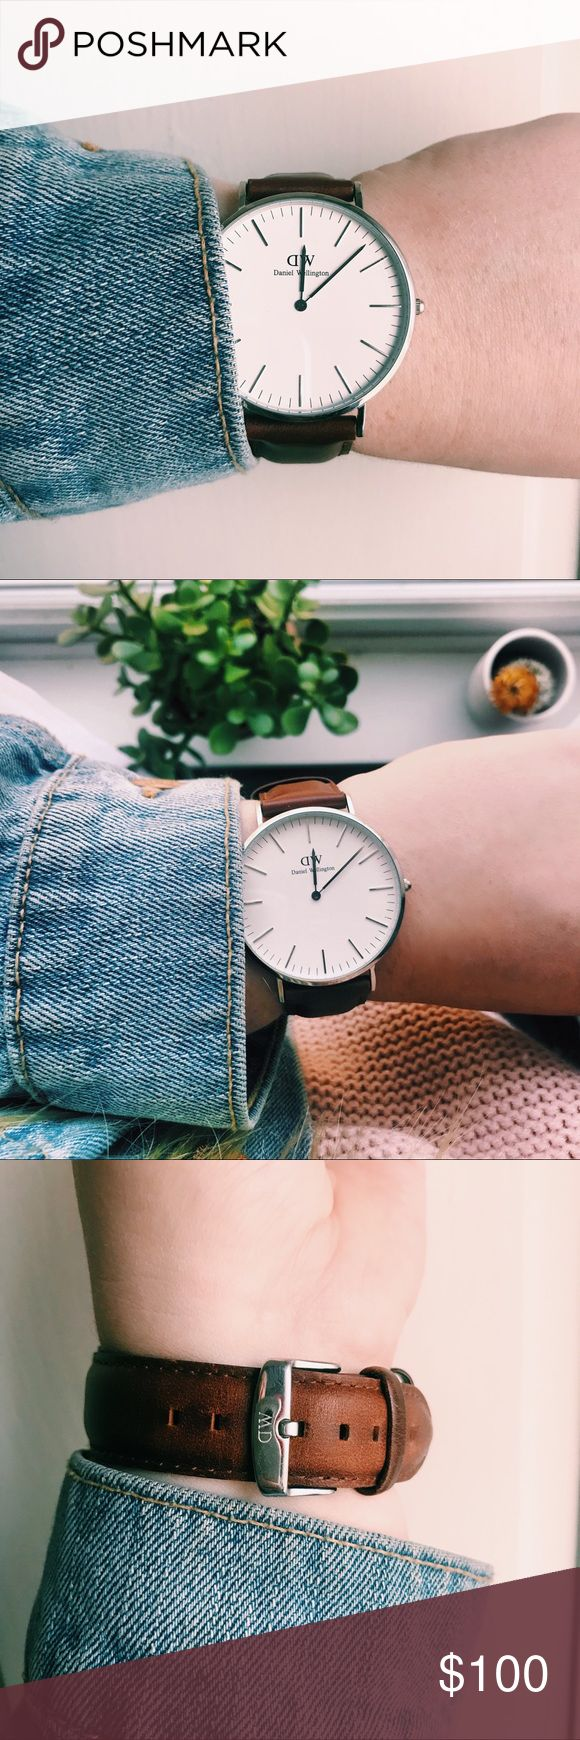 Classic Brown Leather Daniel Wellington Watch Silver/brown leather watch with adjustable band!! Great classy/casual watch! Daniel Wellington Accessories Watches